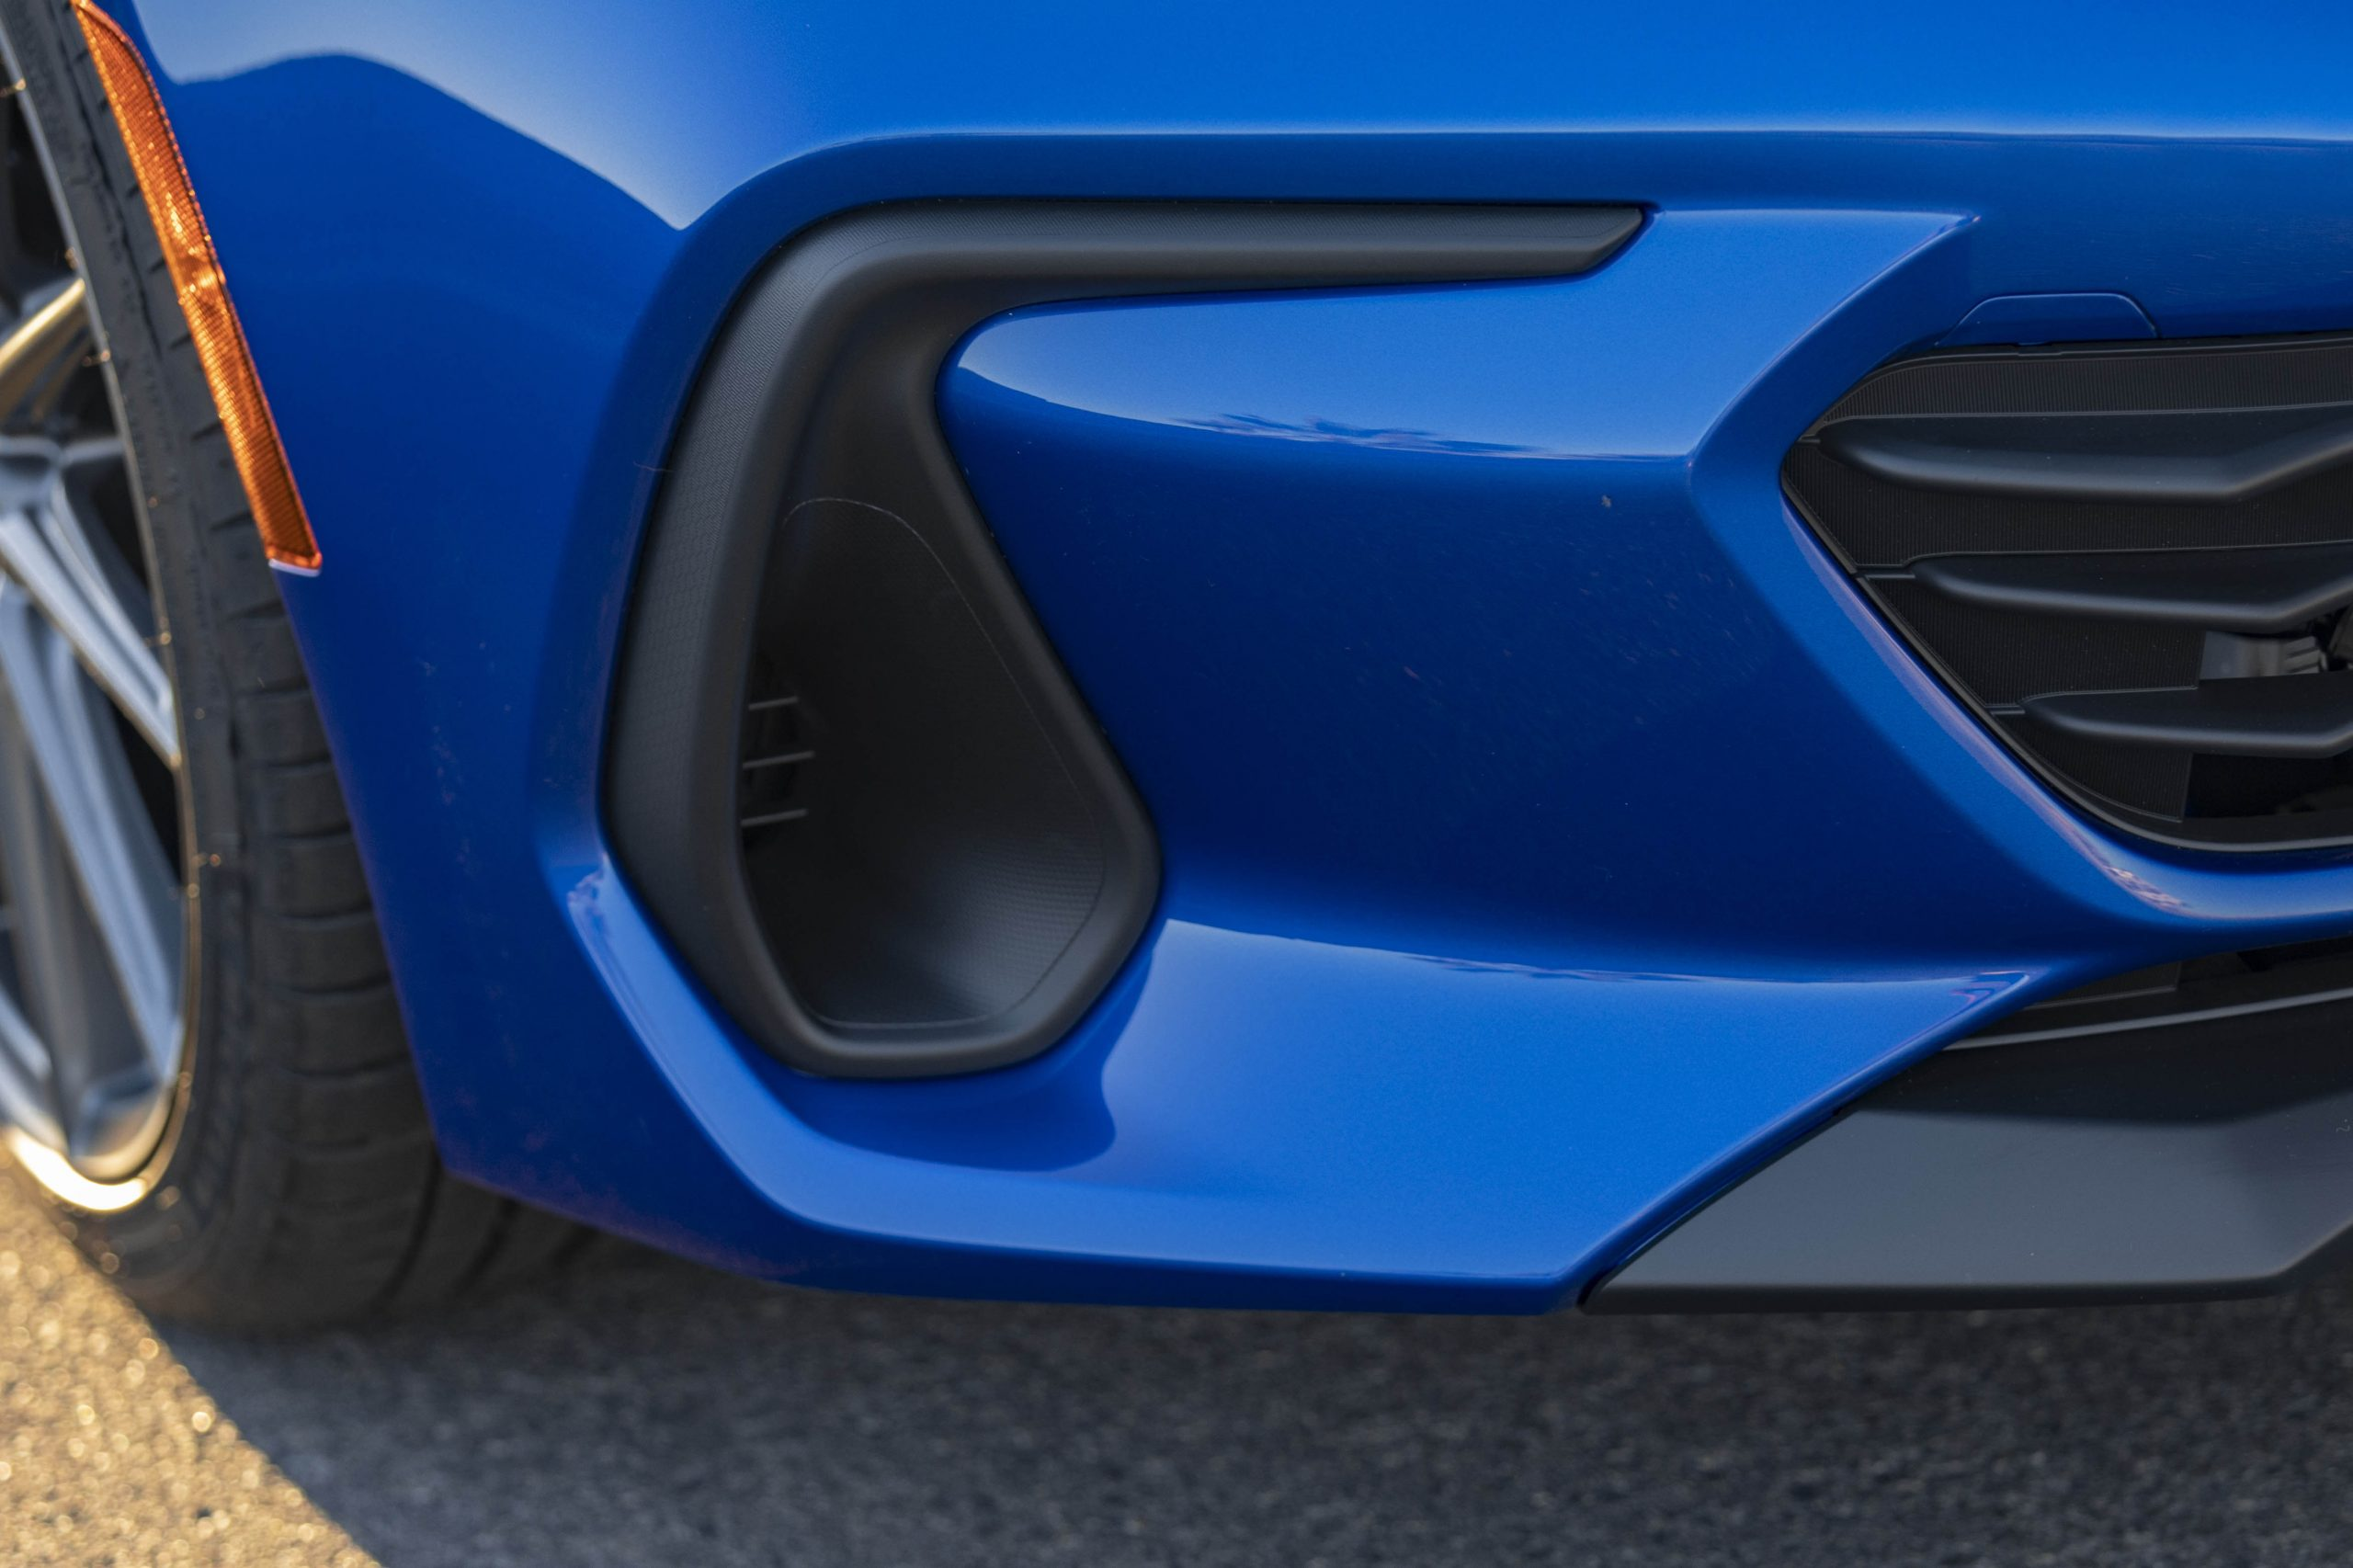 New 2022 Subaru BRZ front lower air duct detail